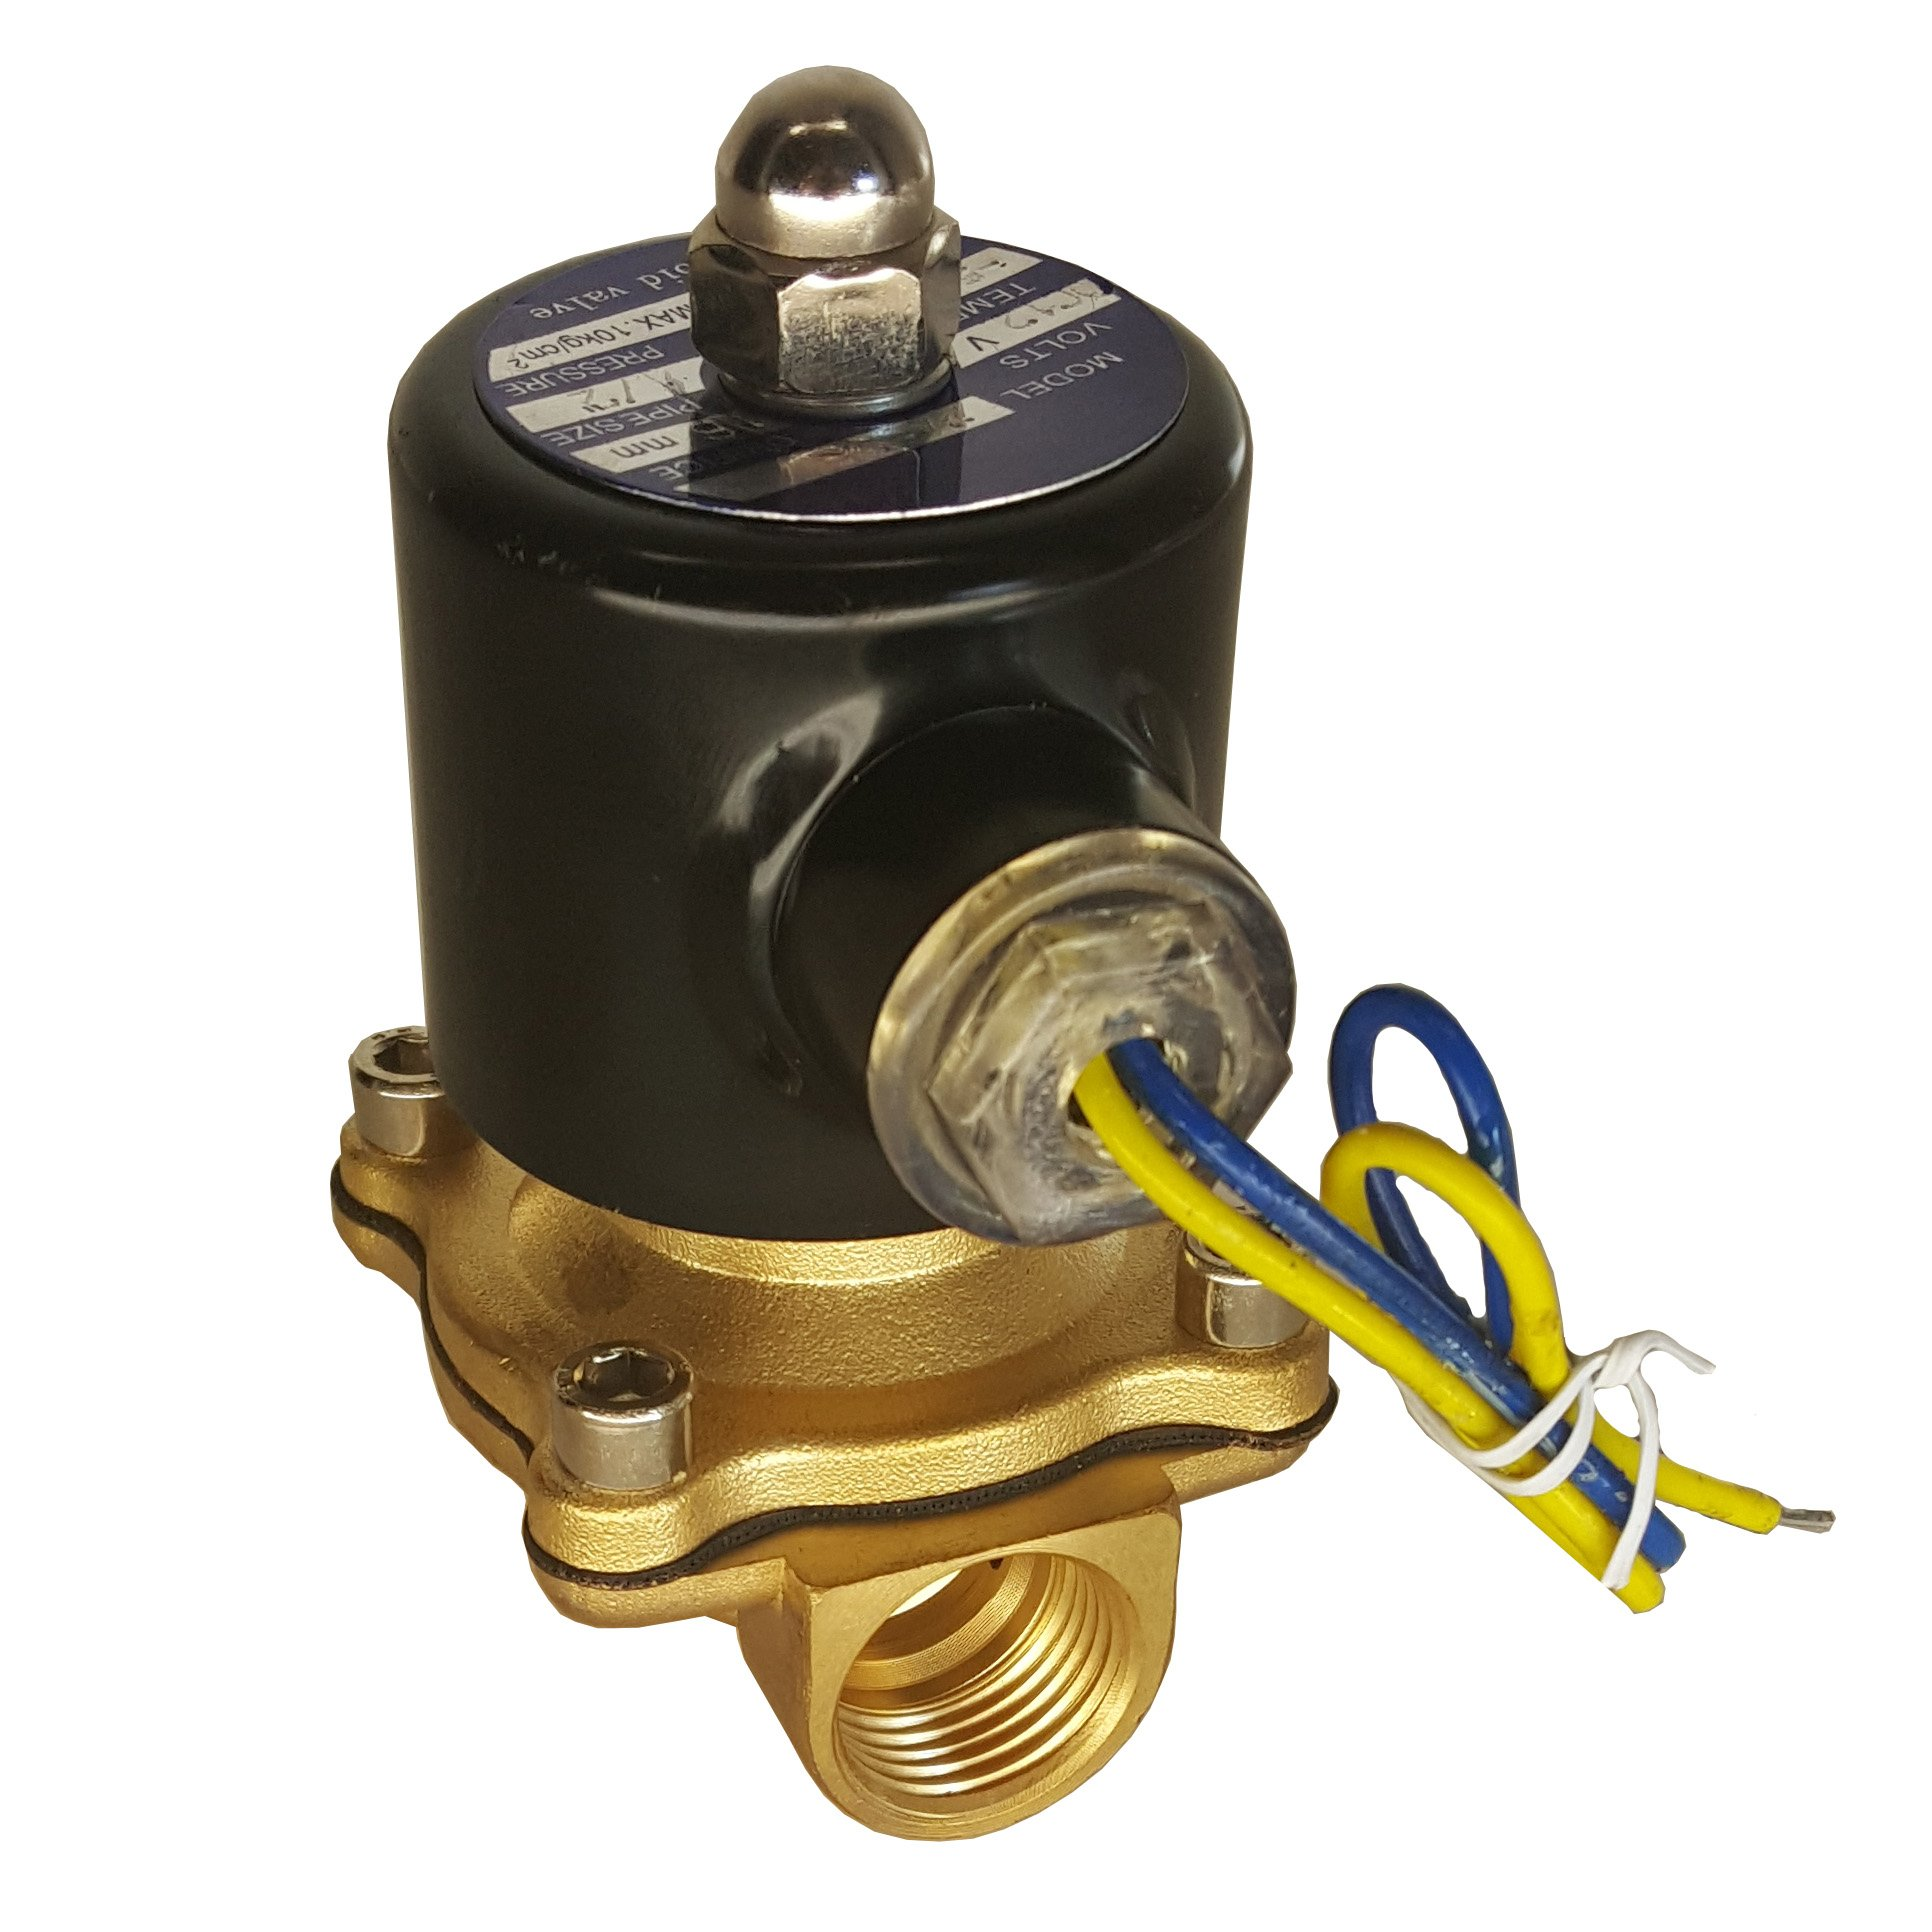 HFS 110v Ac or 12v Dc Electric Solenoid Valve Water Air 1/4'', 1/2'', 3/4'', 1'' NPT Available (12V DC 1/2'' NPT) by HFS